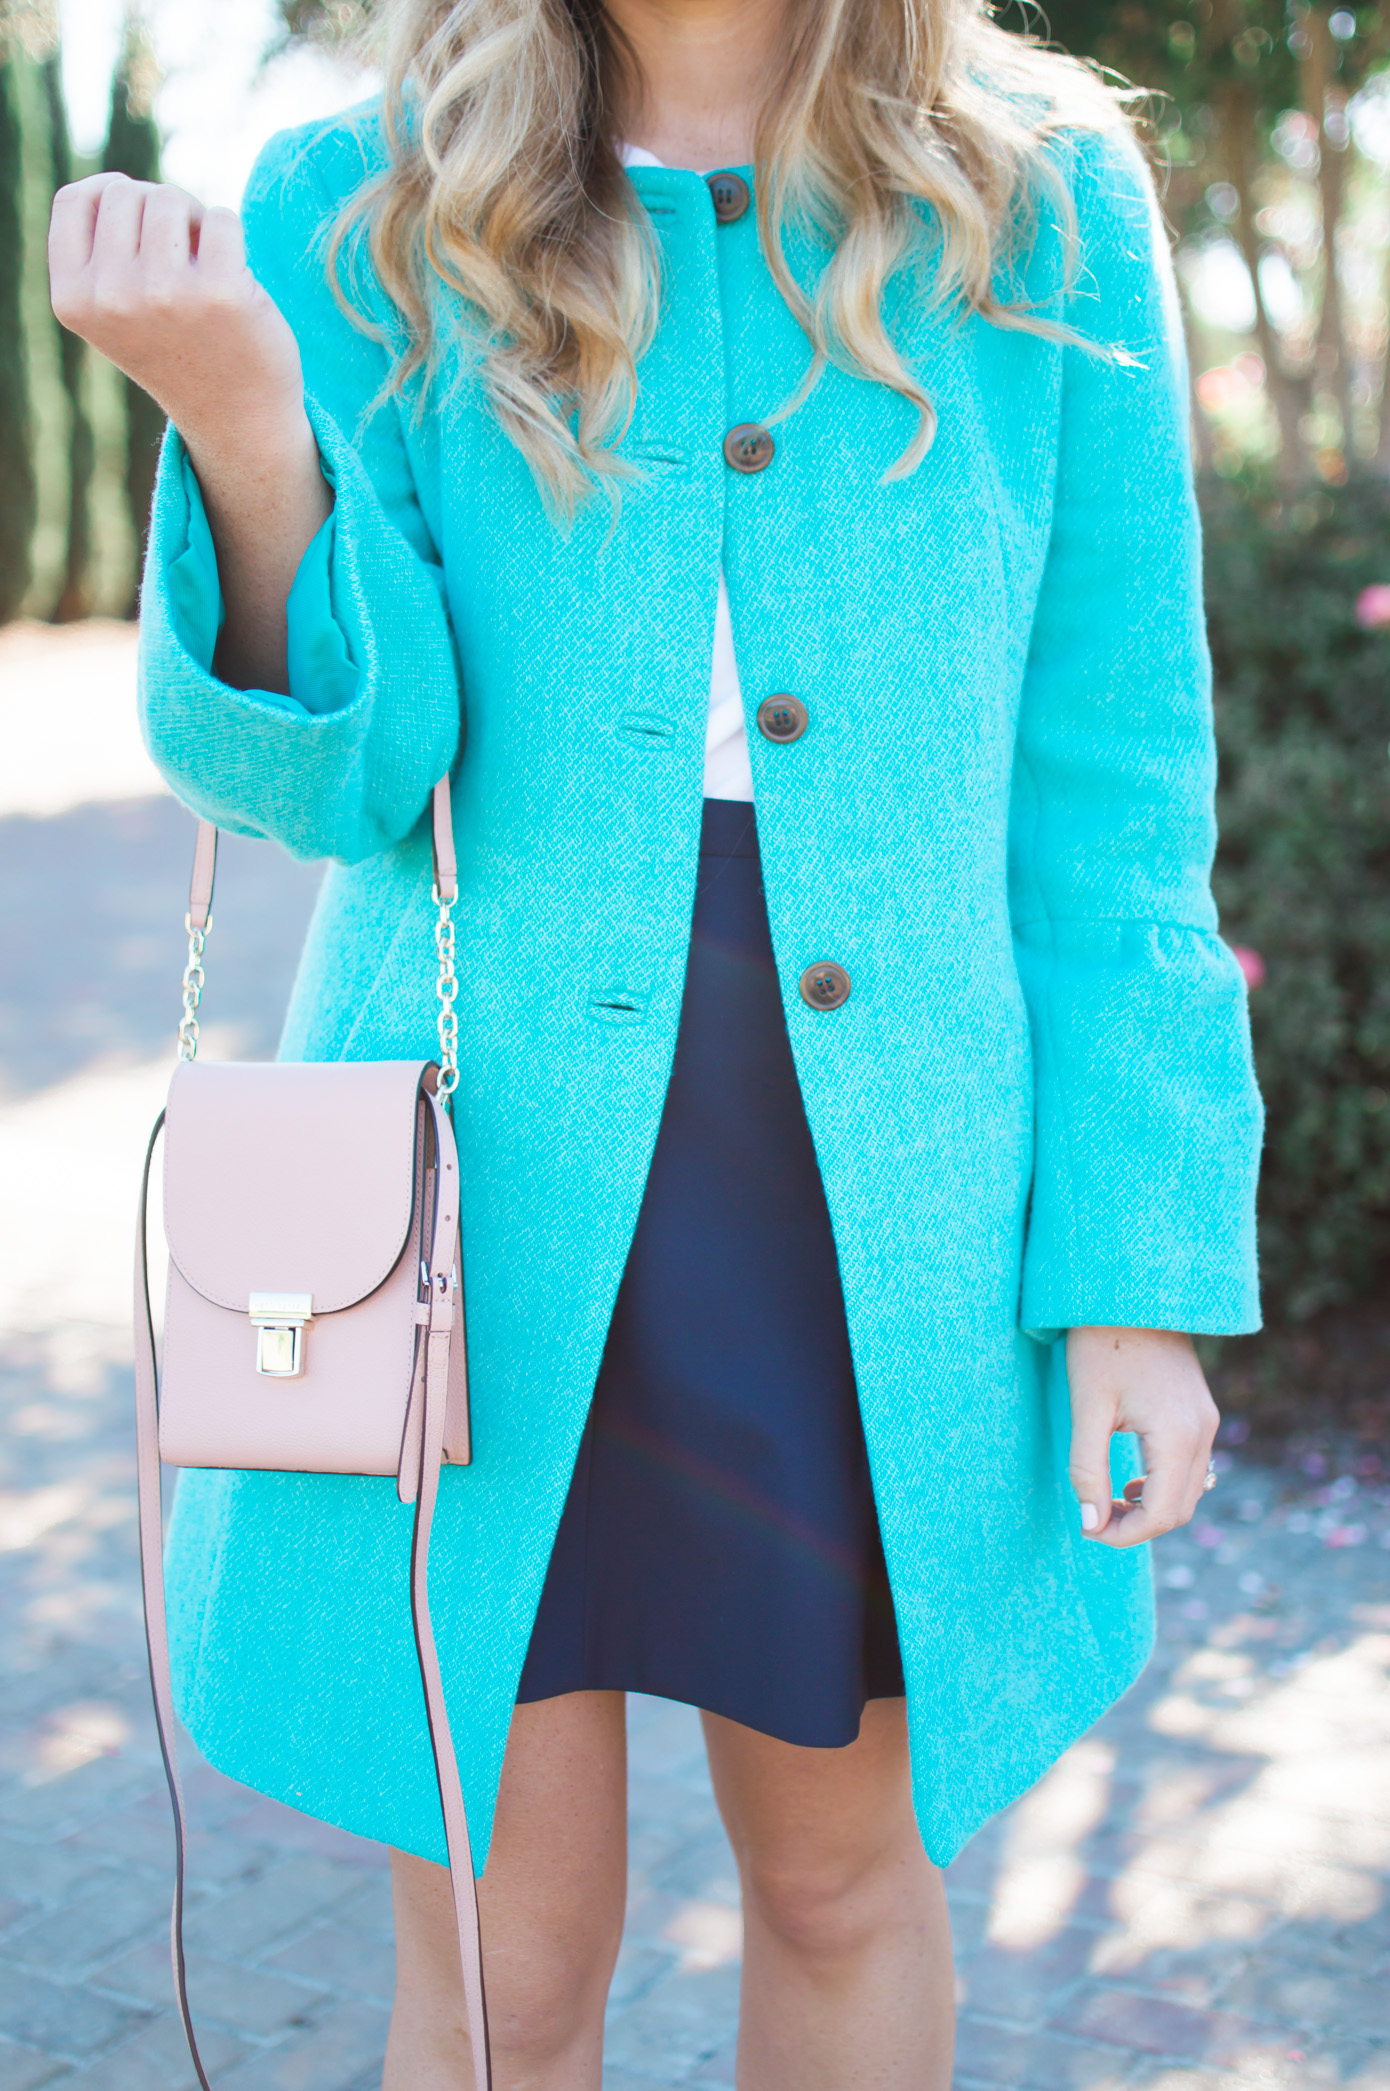 Statement Coat | Must Have Coat for Fall | Louella Reese Life & Style Blog